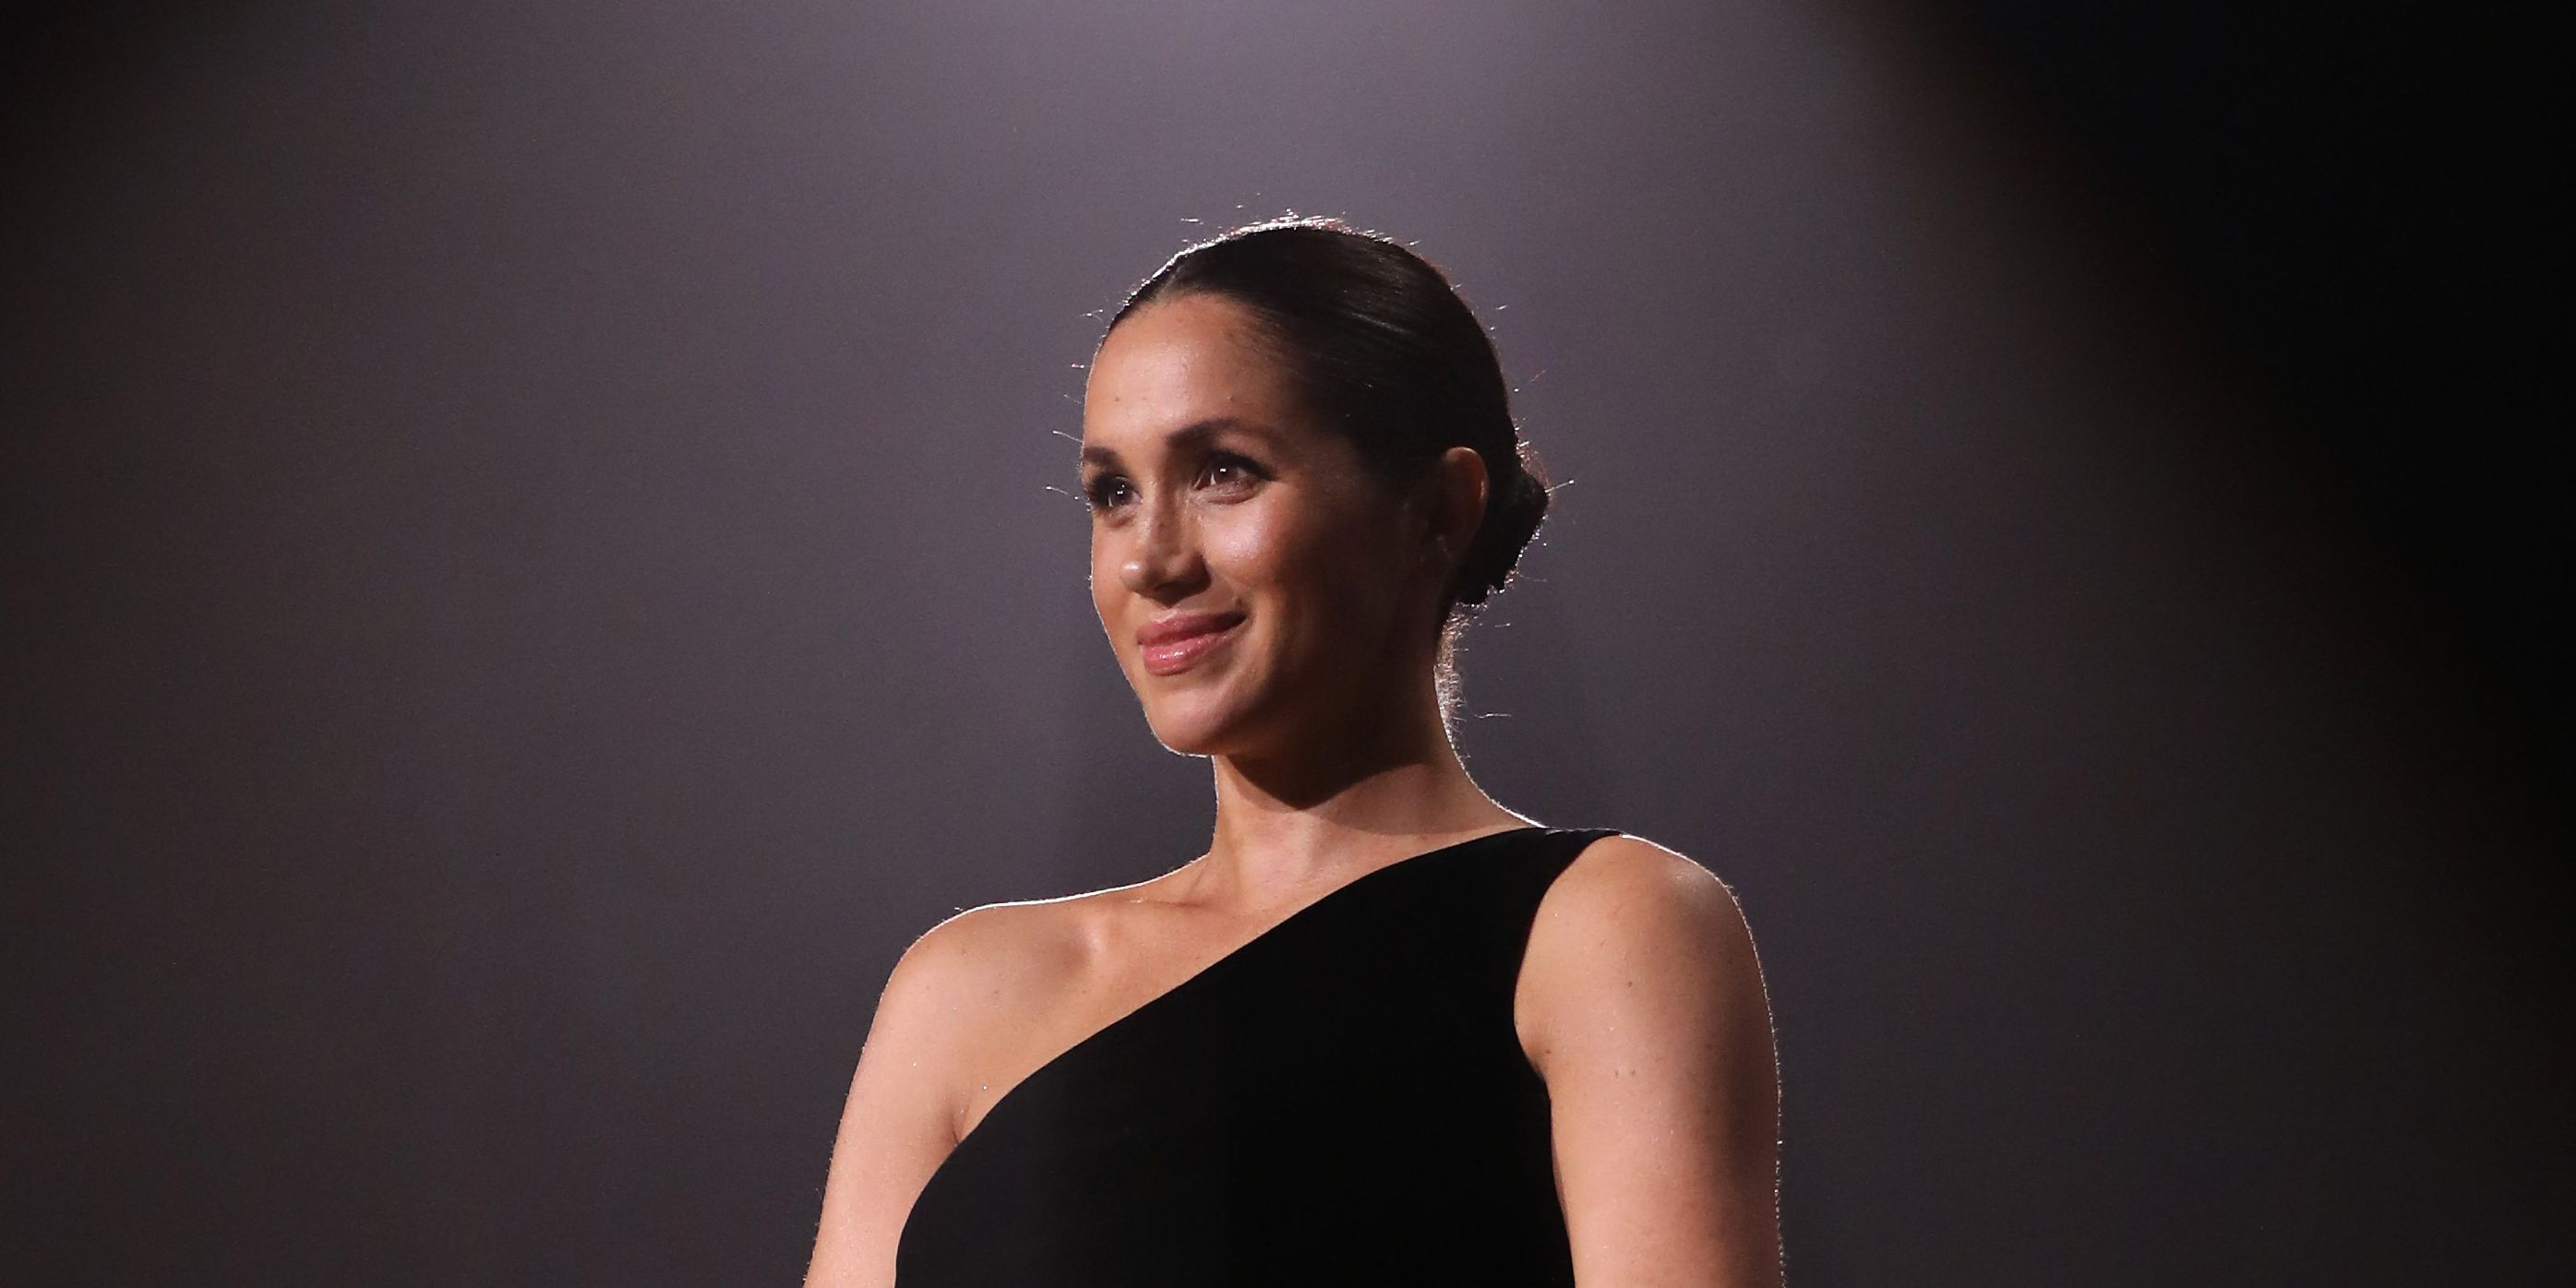 Meghan Markle in black Givenchy dress Fashion Awards 2018